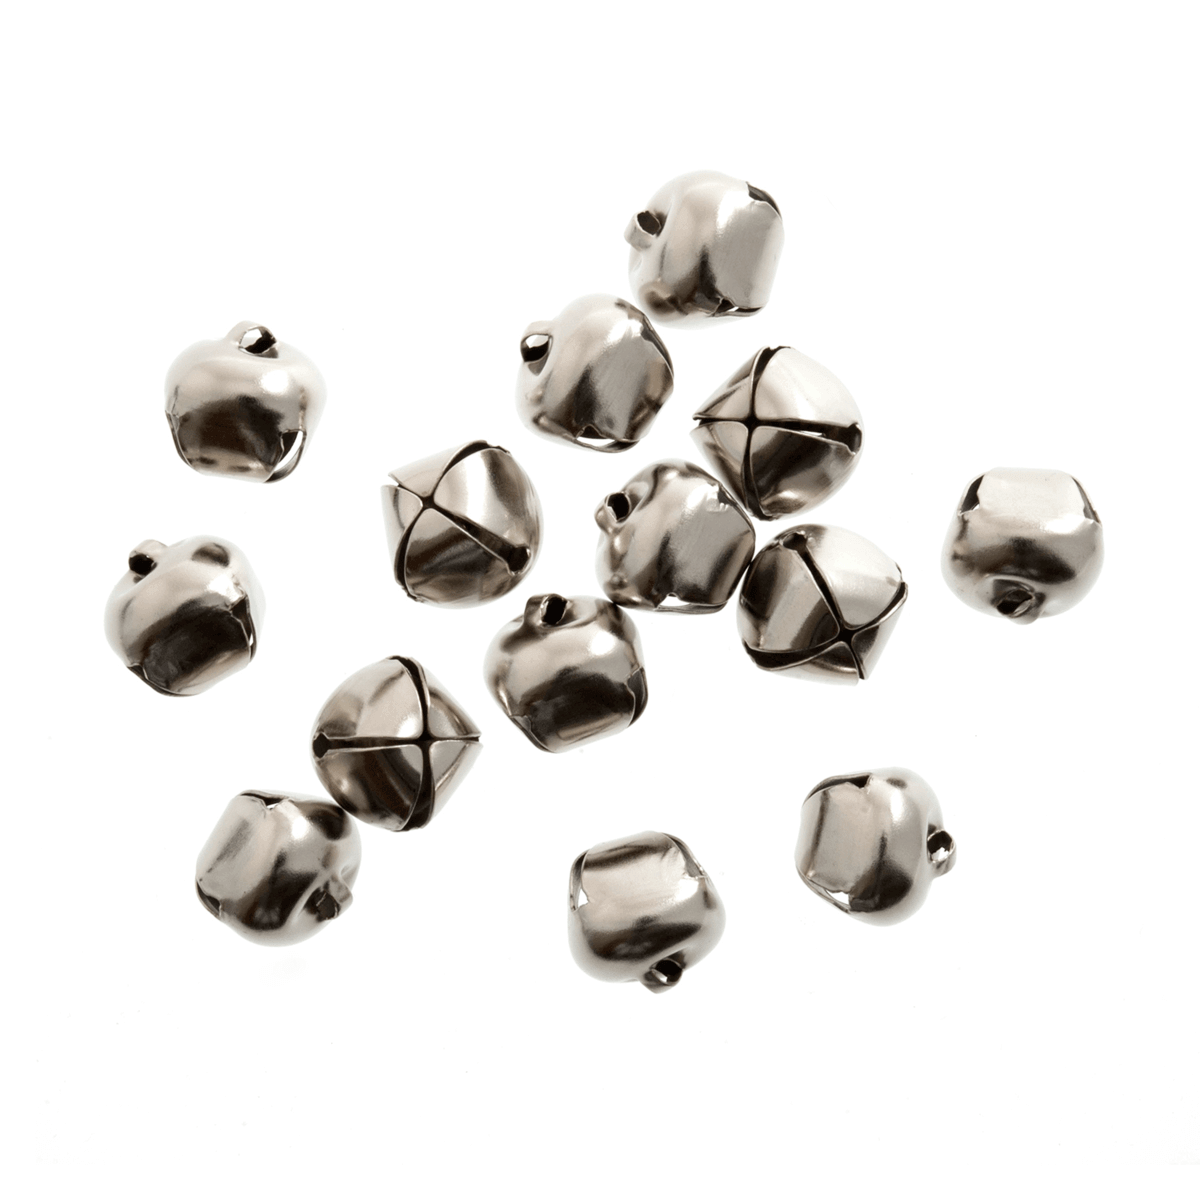 10 x Jingle Bells 20mm Silver